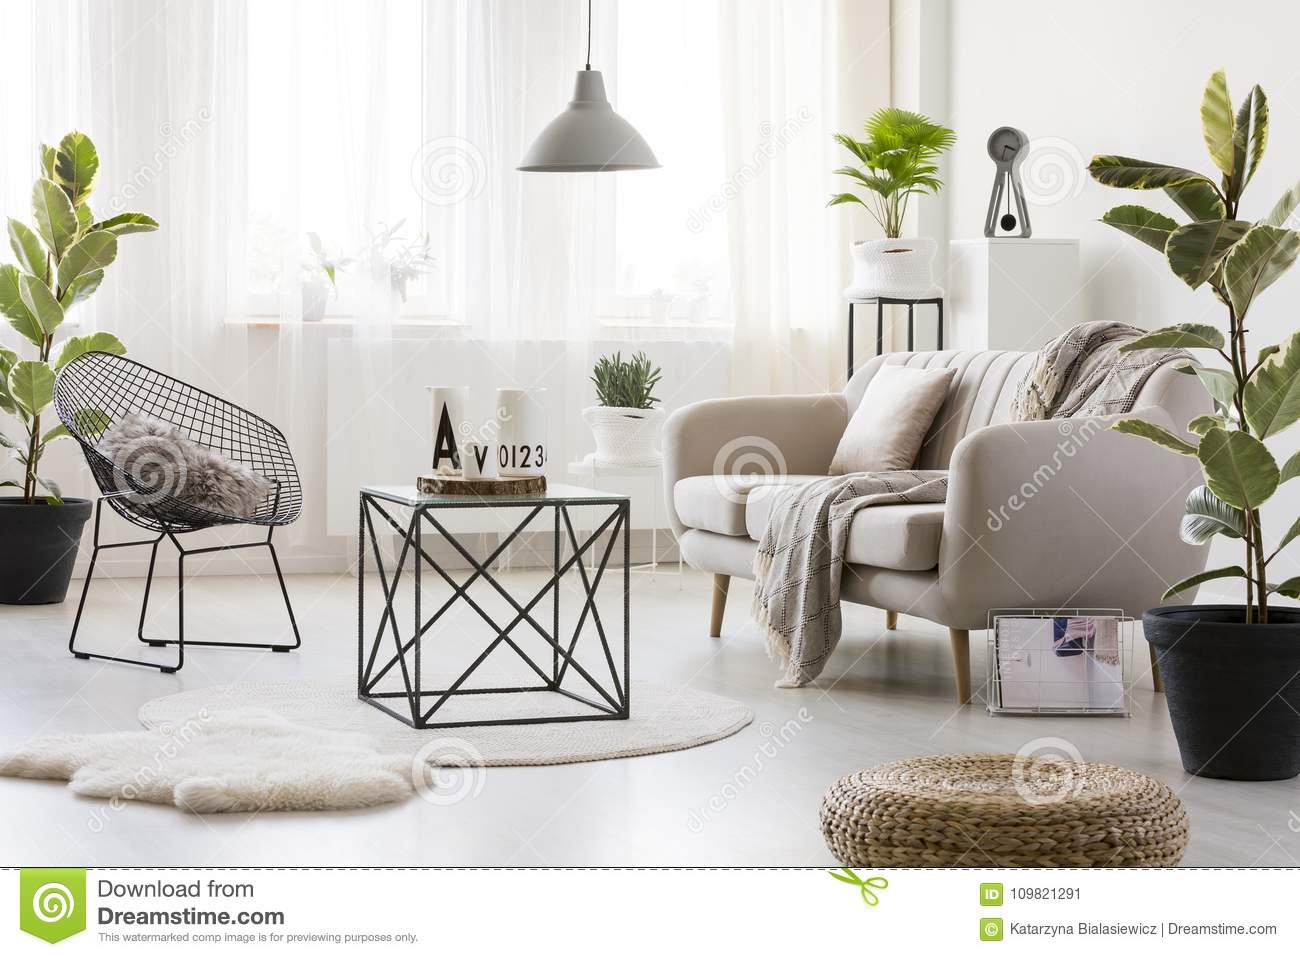 Sofa in bright living room stock image. Image of bright - 109821291